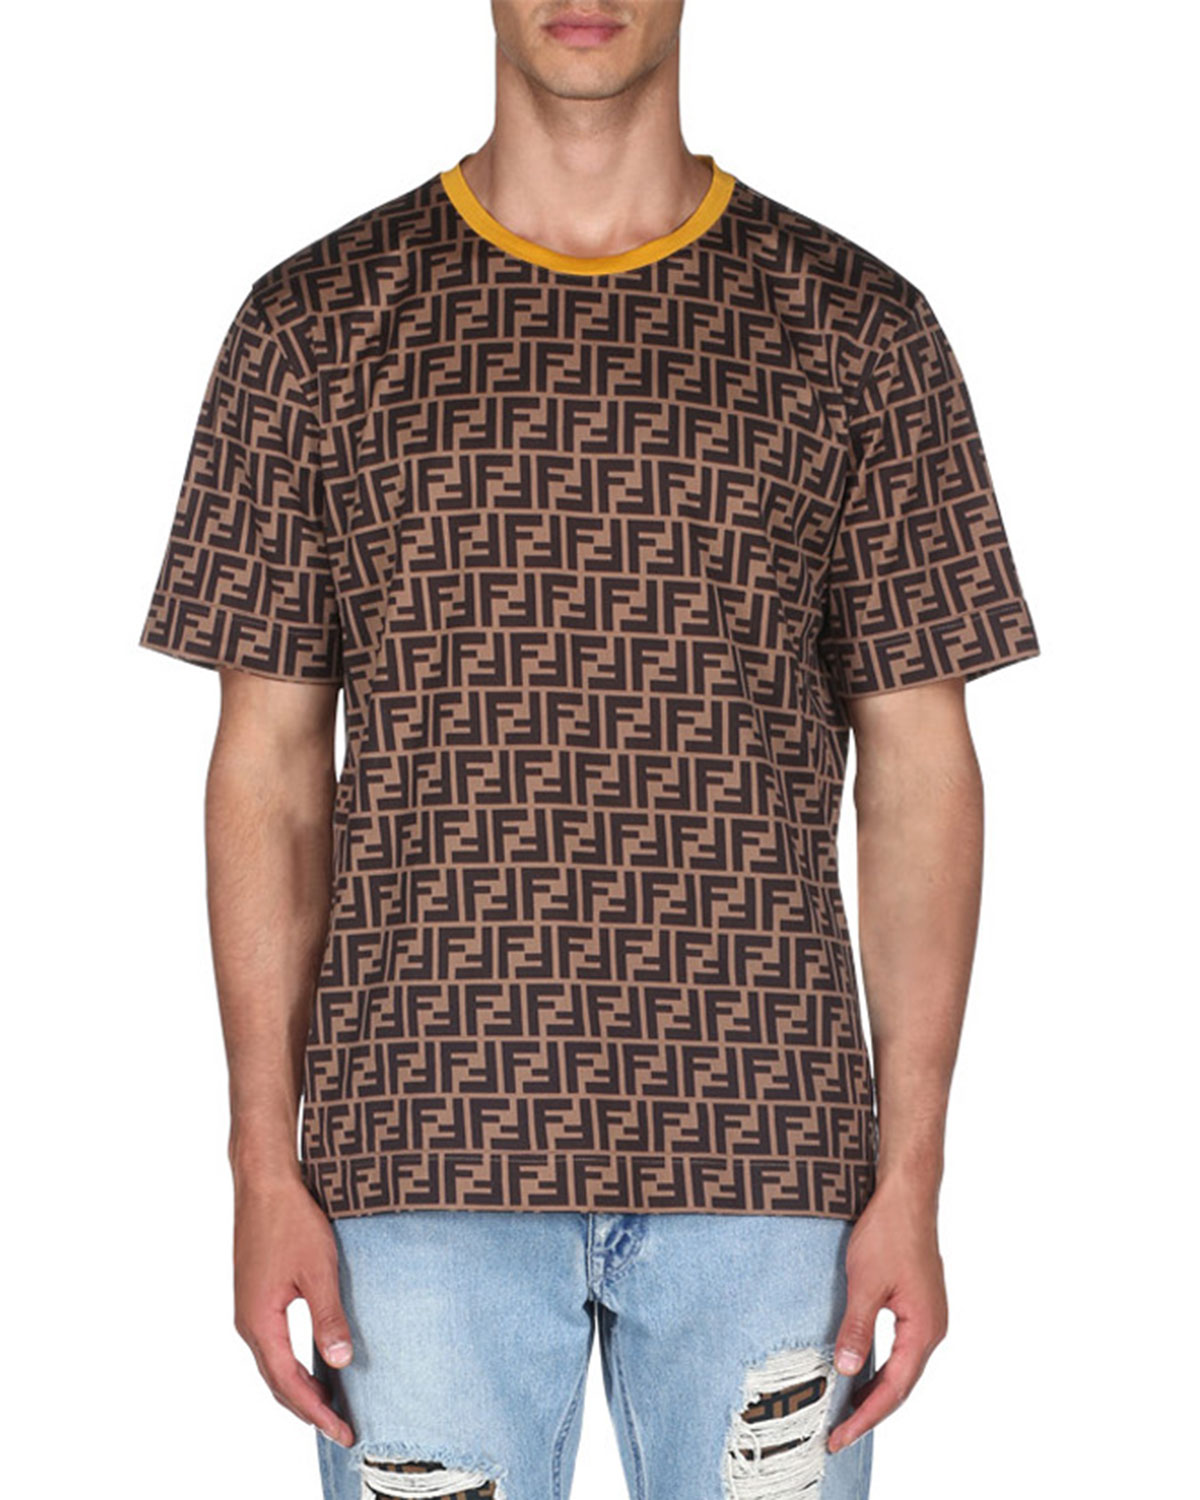 b6f82dae4af5 Fendi Men s Allover Print Short-Sleeve T-Shirt